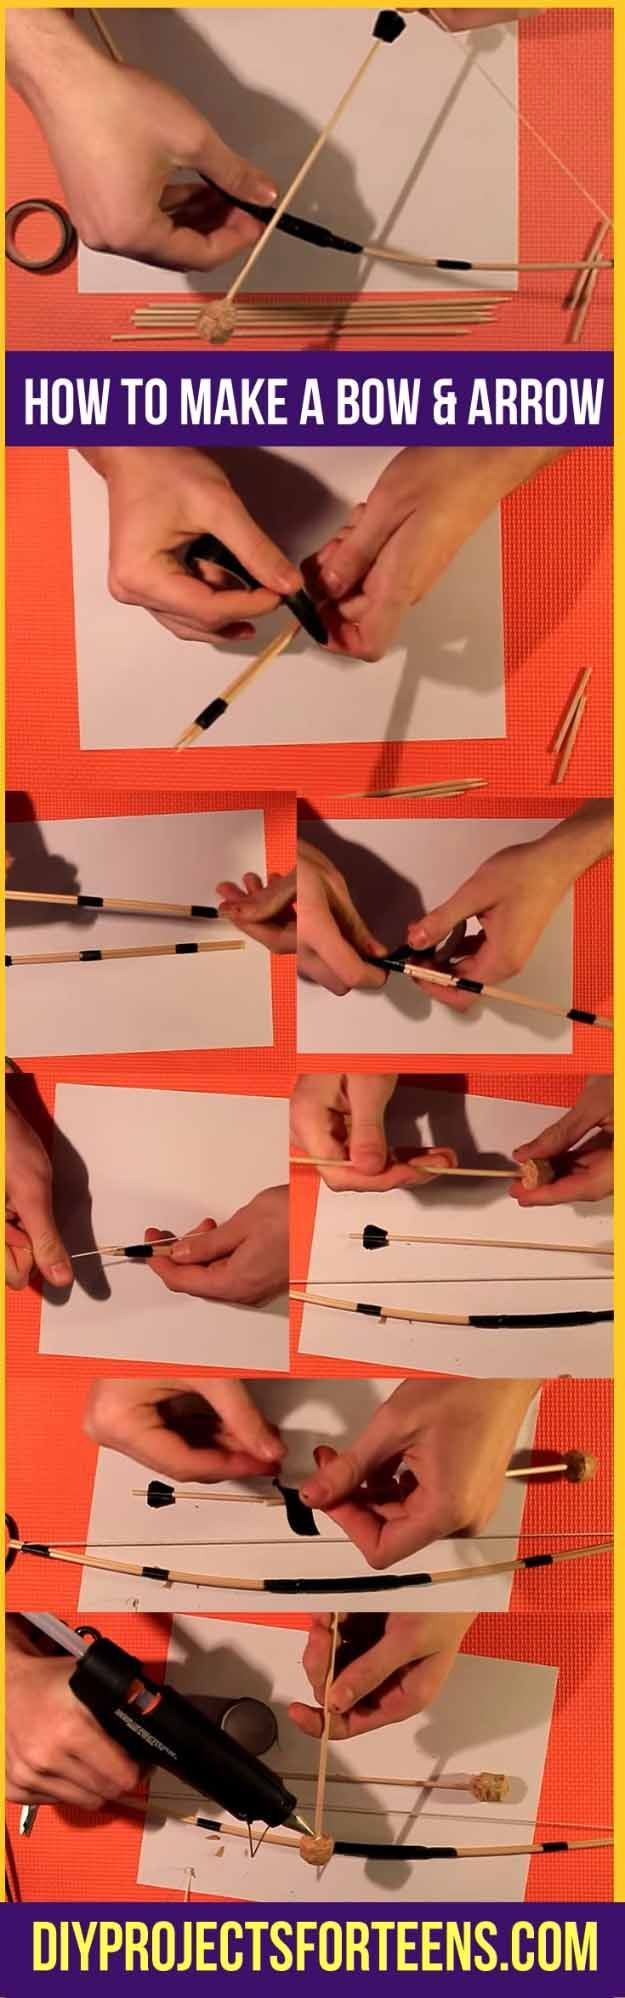 Cool Crafts You Can Make for Less than 5 Dollars | Cheap DIY Projects Ideas for Teens, Tweens, Kids and Adults | Make A DIY Mini Bow and Arrow | http://diyprojectsforteens.com/cheap-diy-ideas-for-teens/